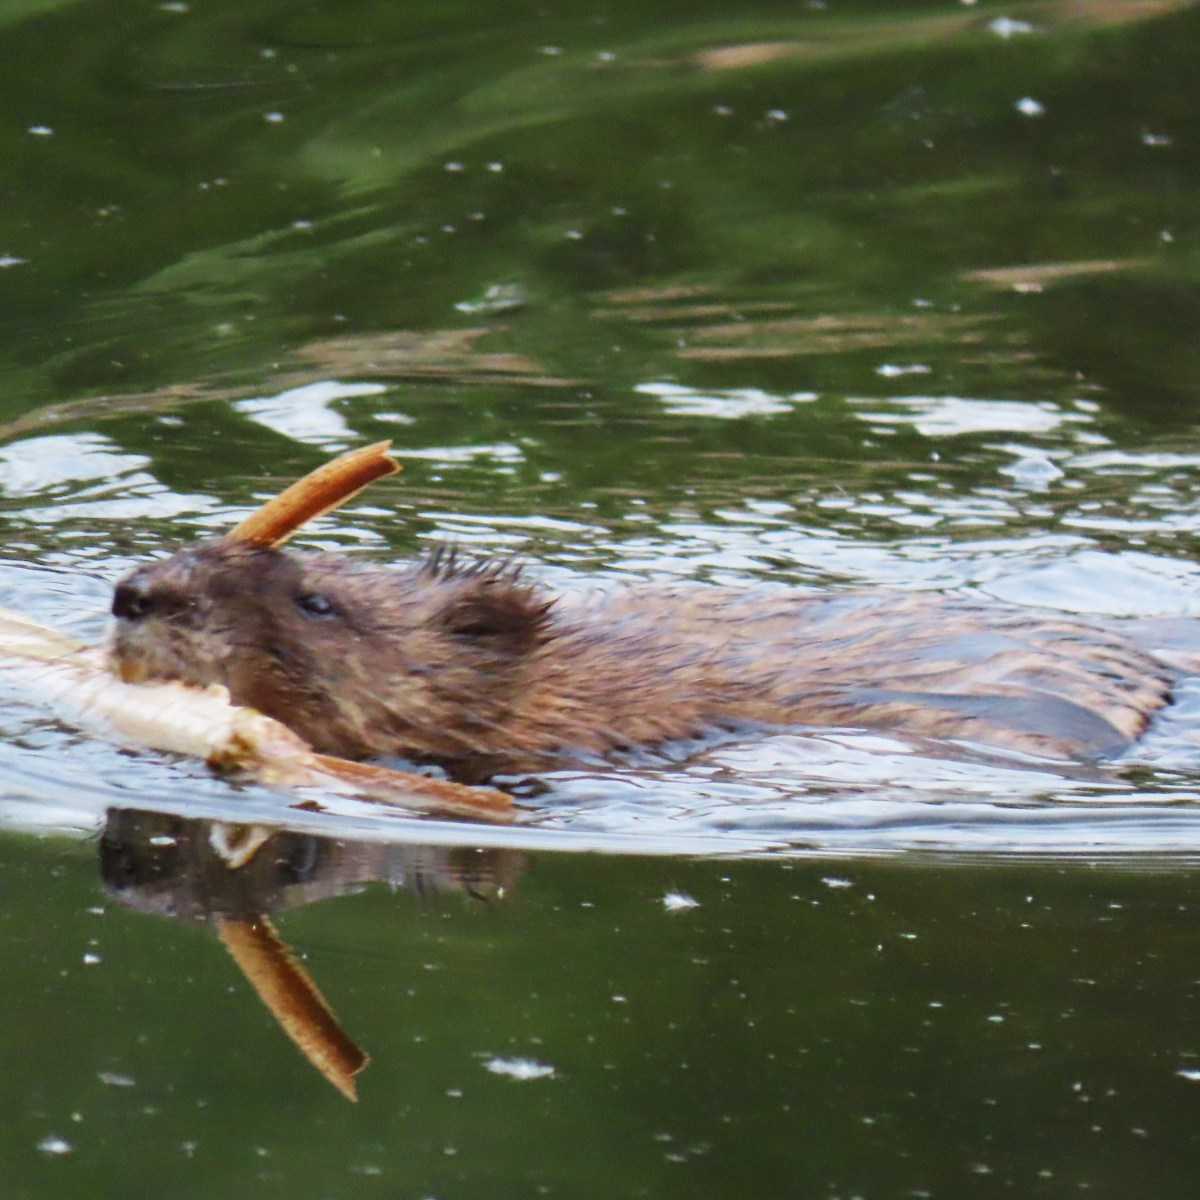 A muskrat swims with a cattail in its mouth